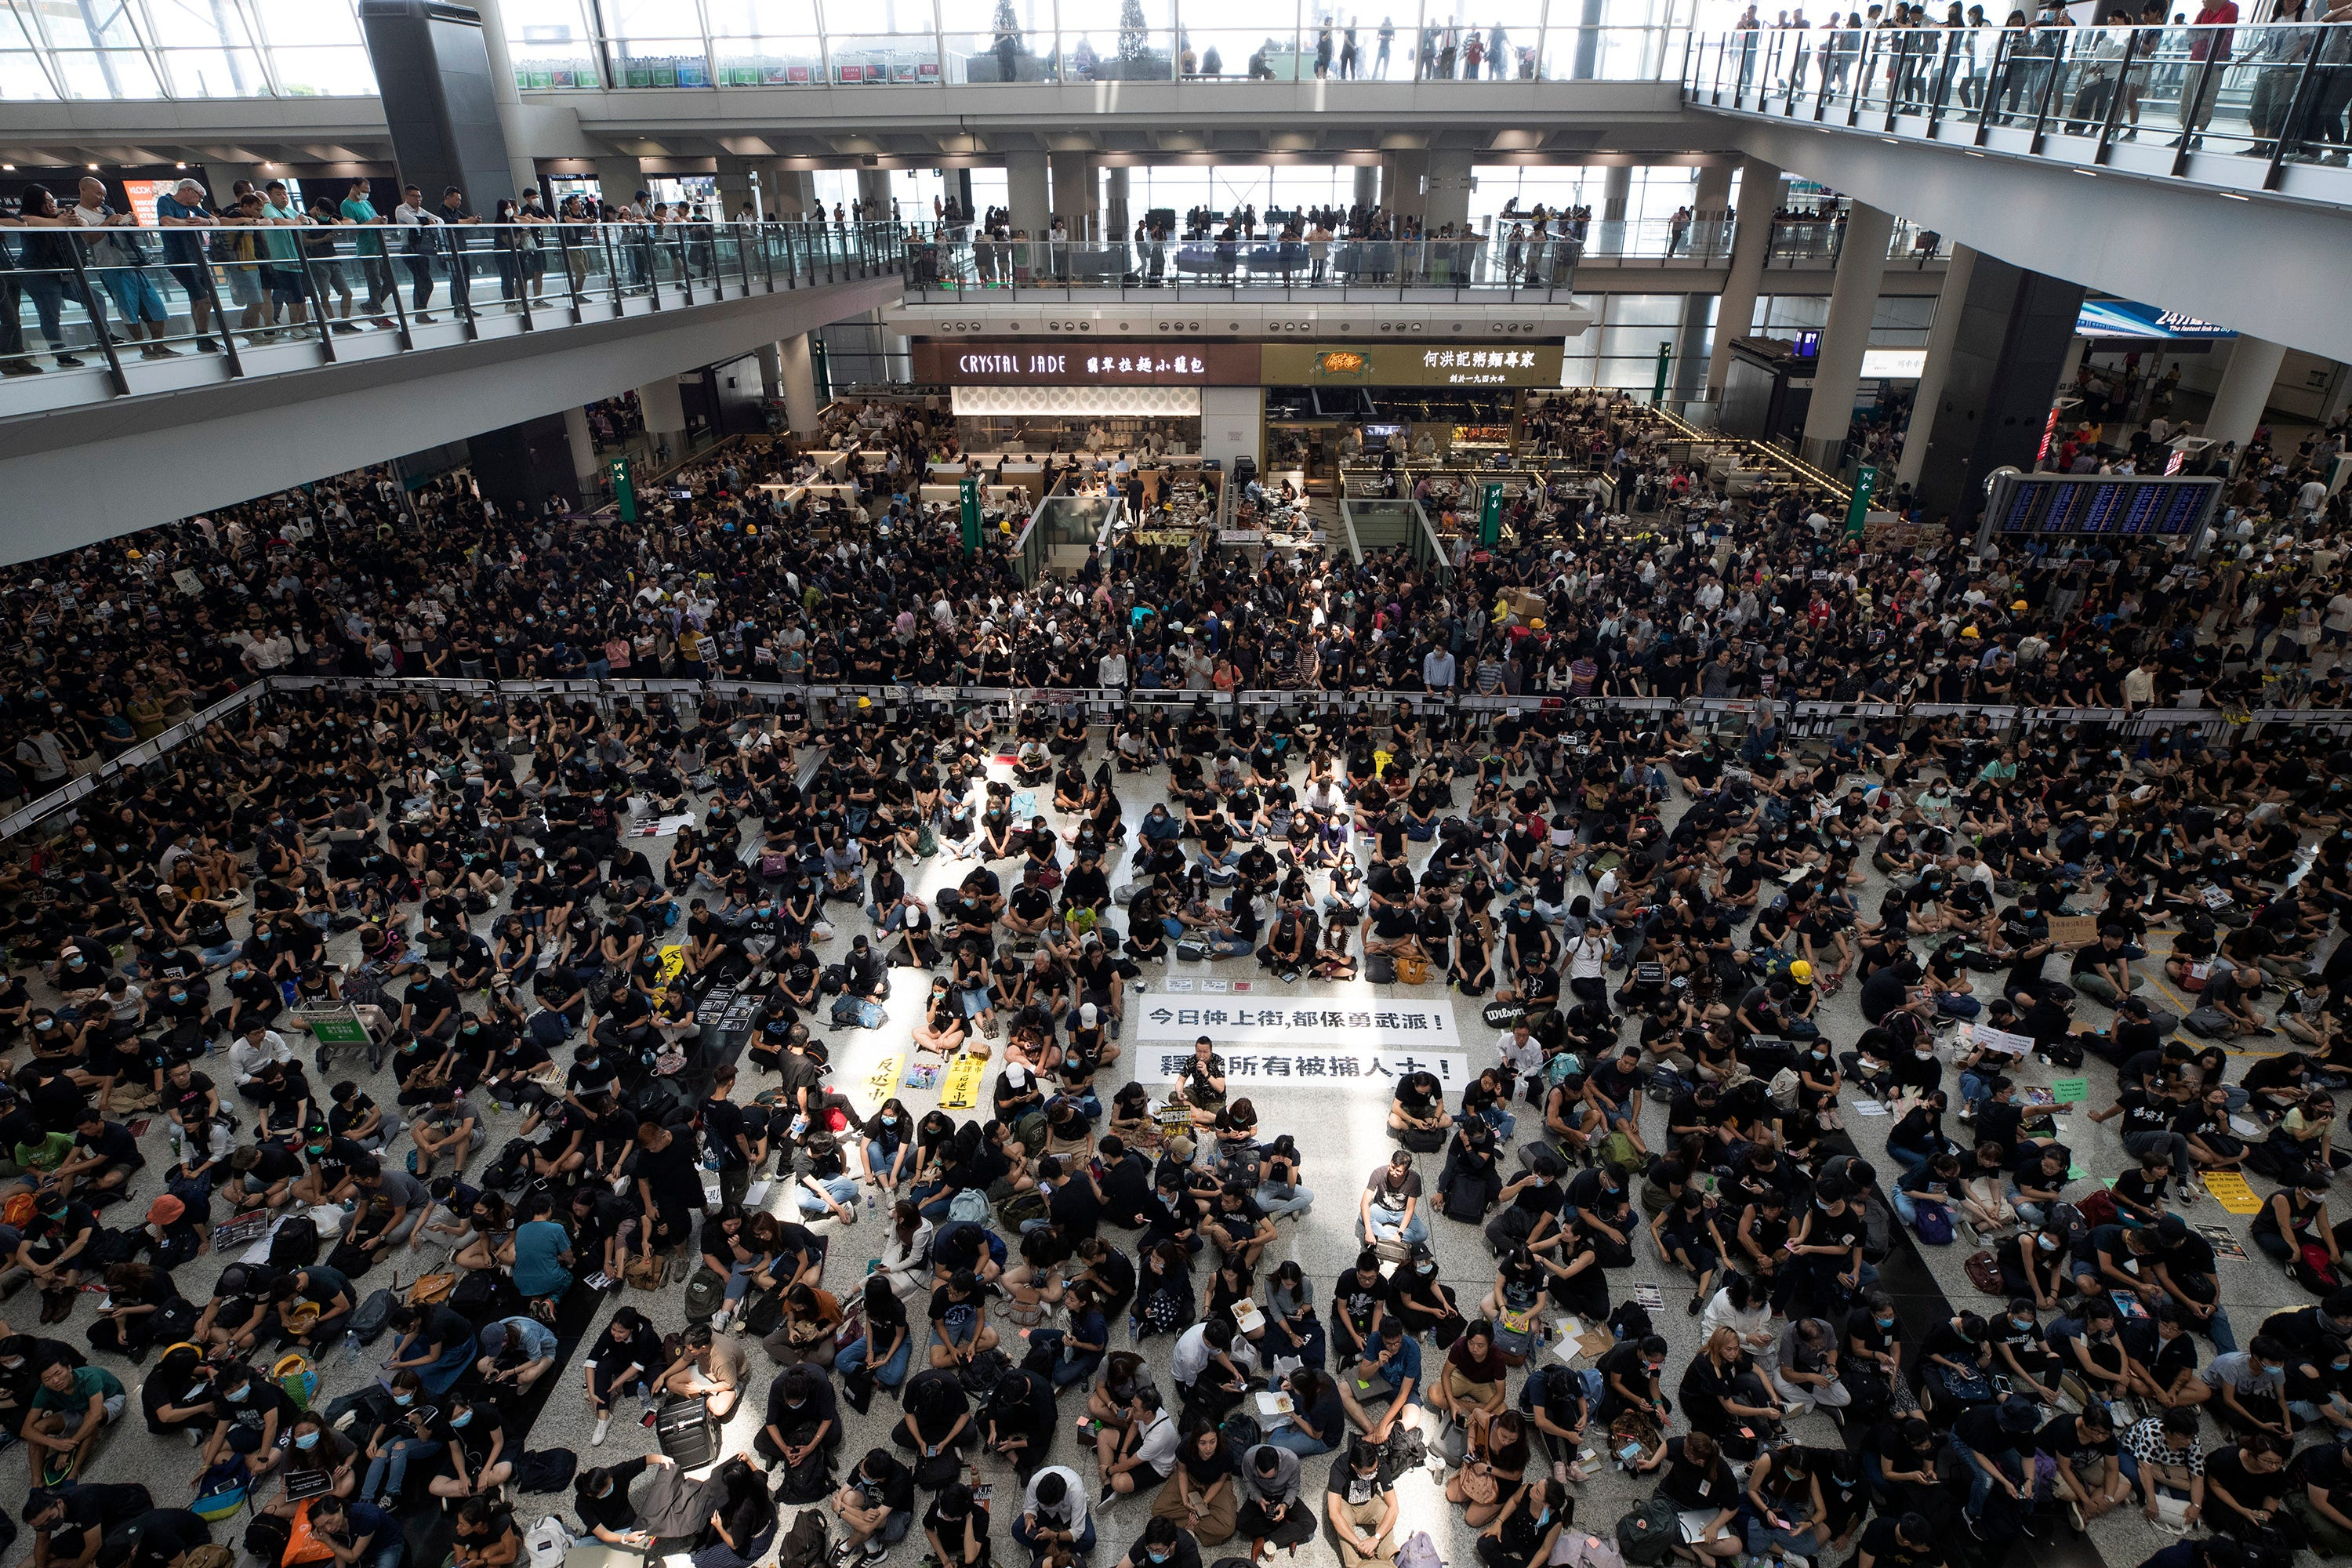 Thousands of protesters shut down Hong Kong International Airport